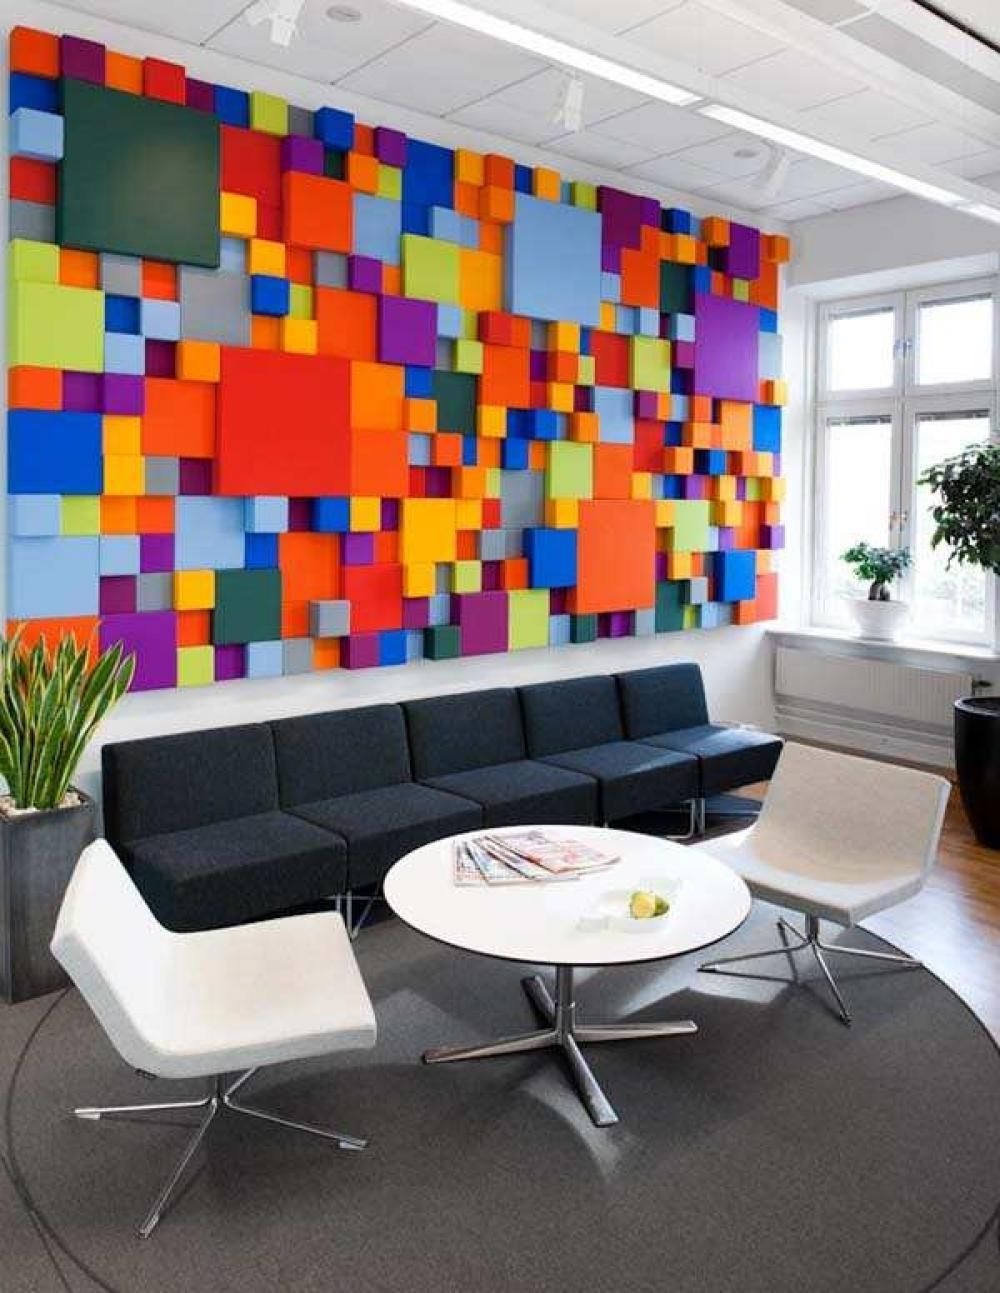 Cheerful Office Interior Desain In Sweden With Colorful Wall Decoration 24 Cool Modern And Spacious Designs Concept Design